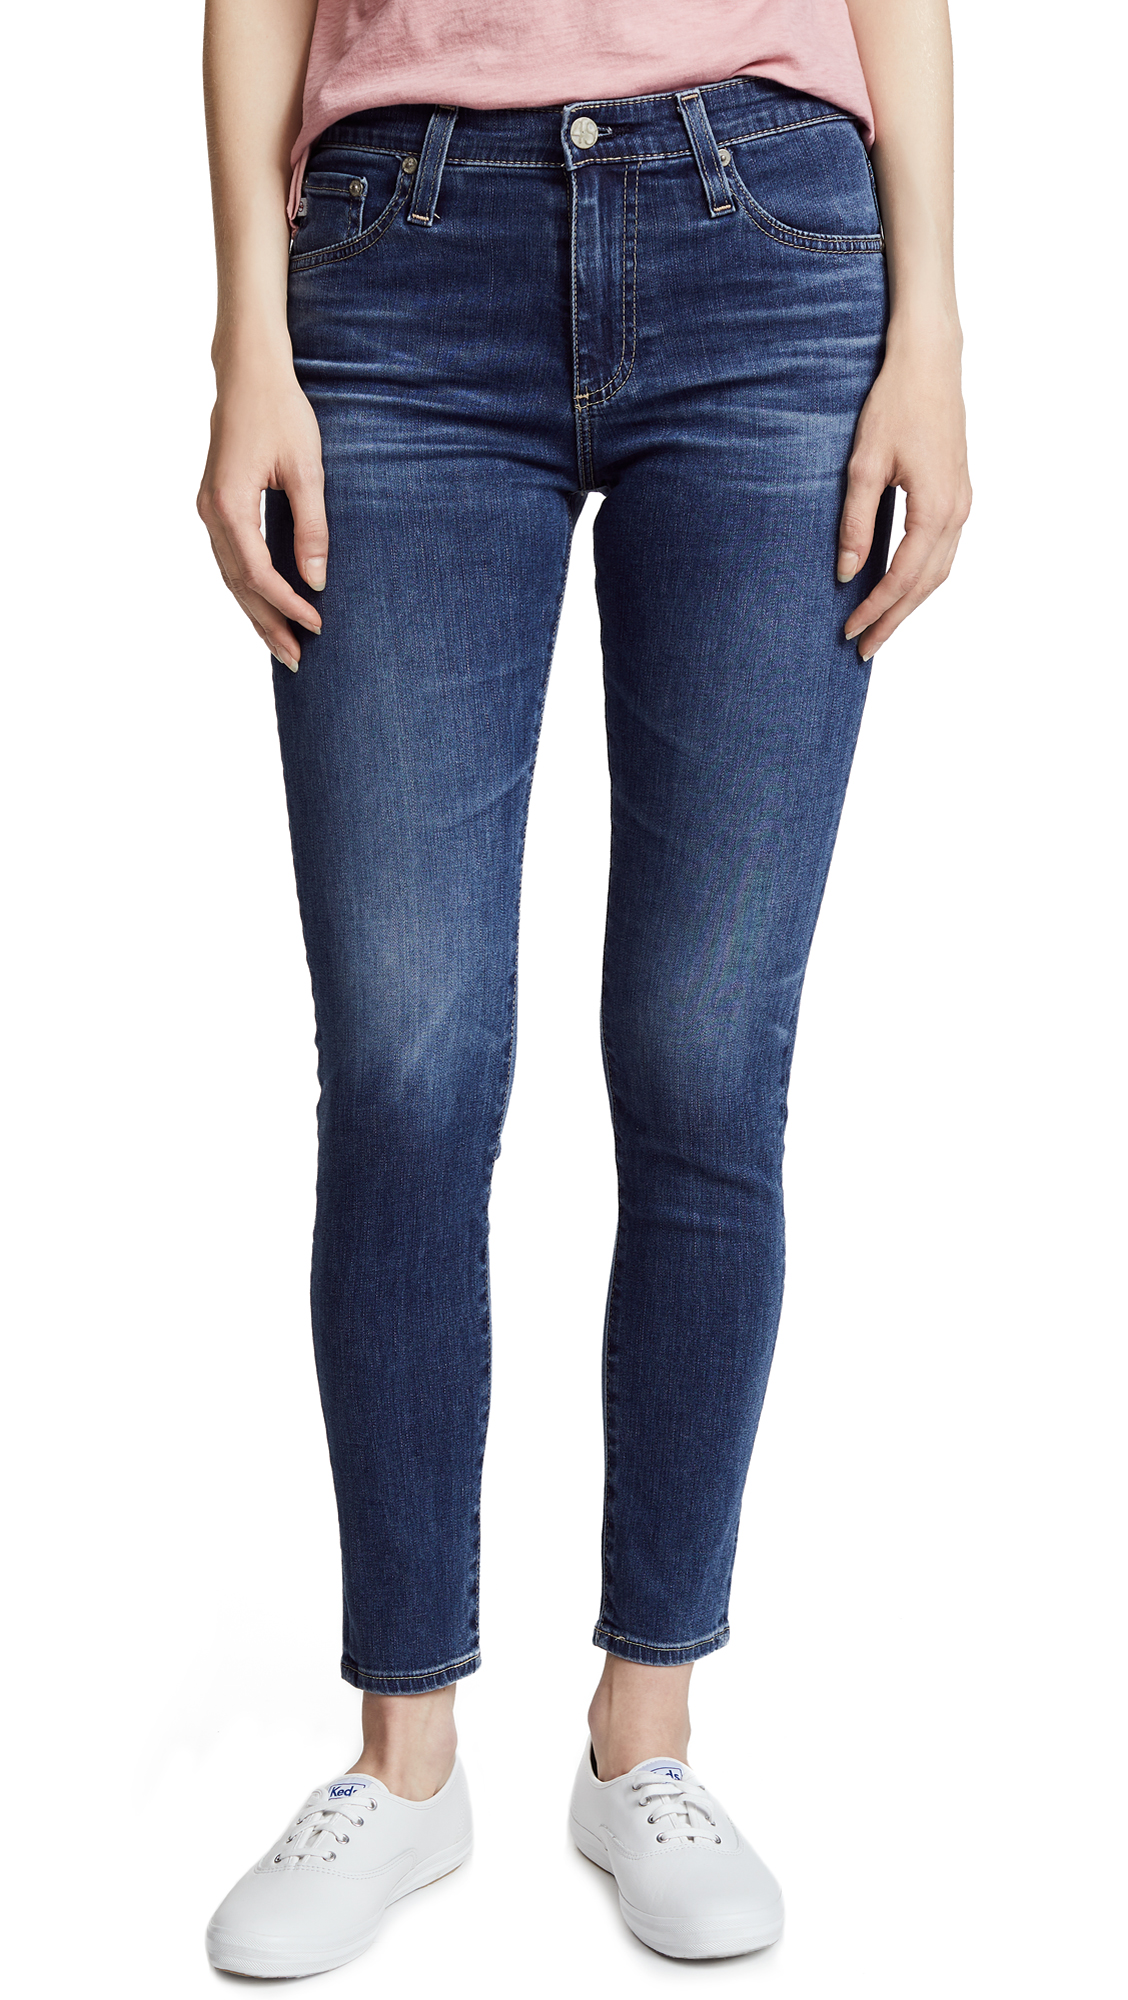 AG The Farrah Ankle Skinny Jeans In 10 Years Sea Mist